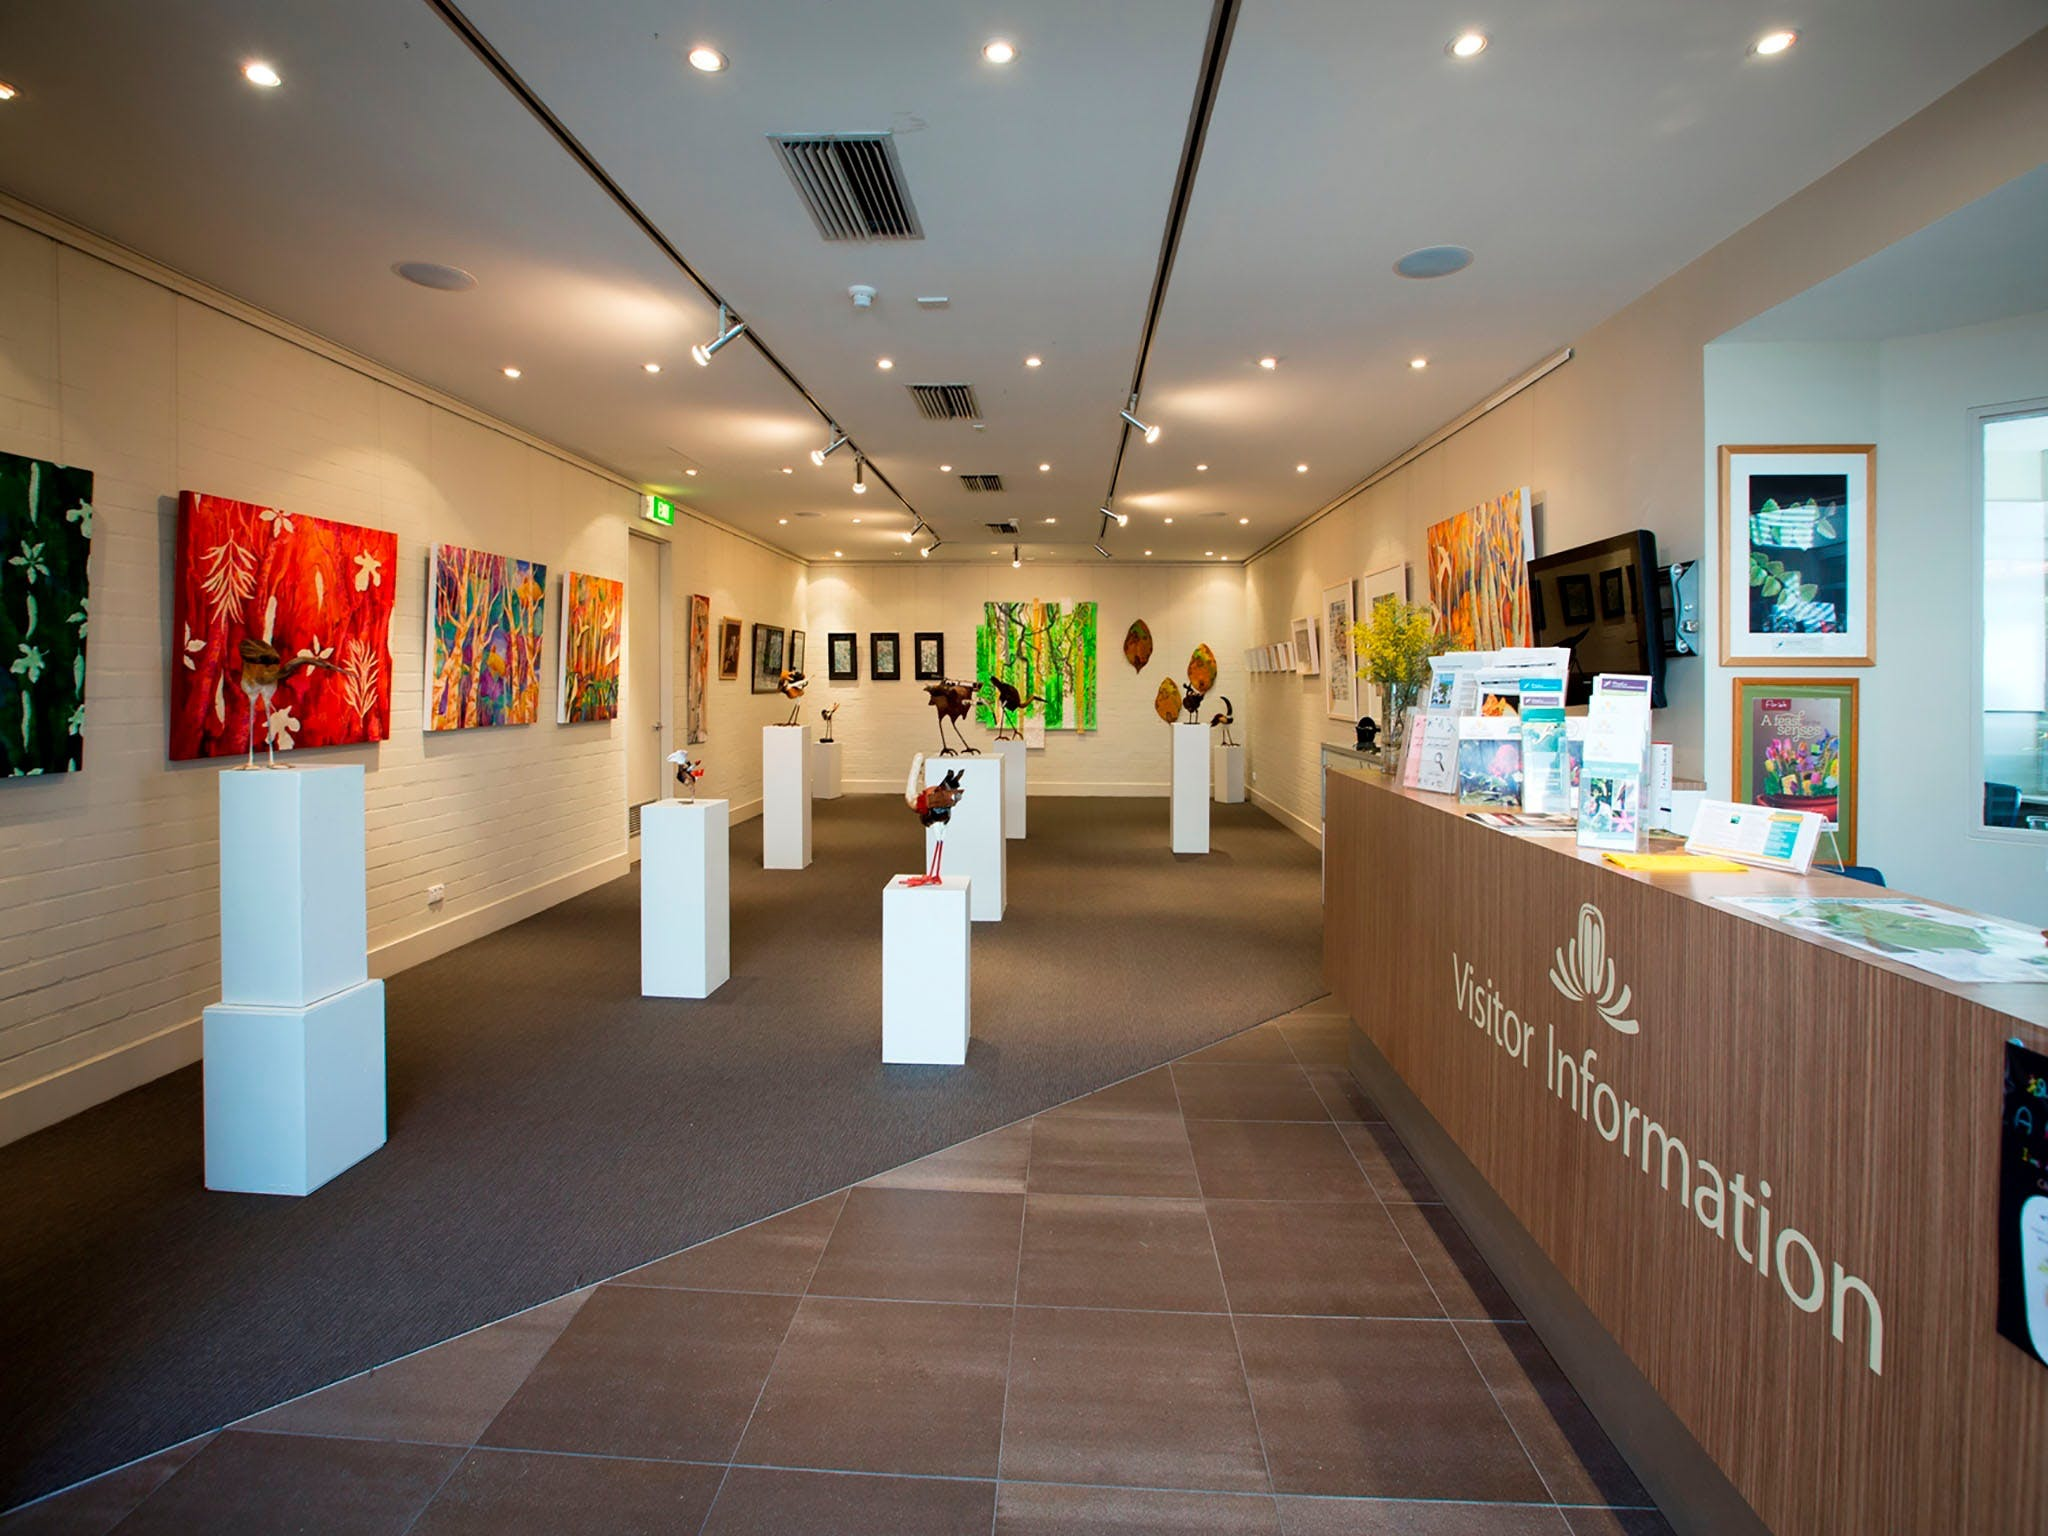 Australian National Botanic Gardens Visitor Centre Gallery - Broome Tourism